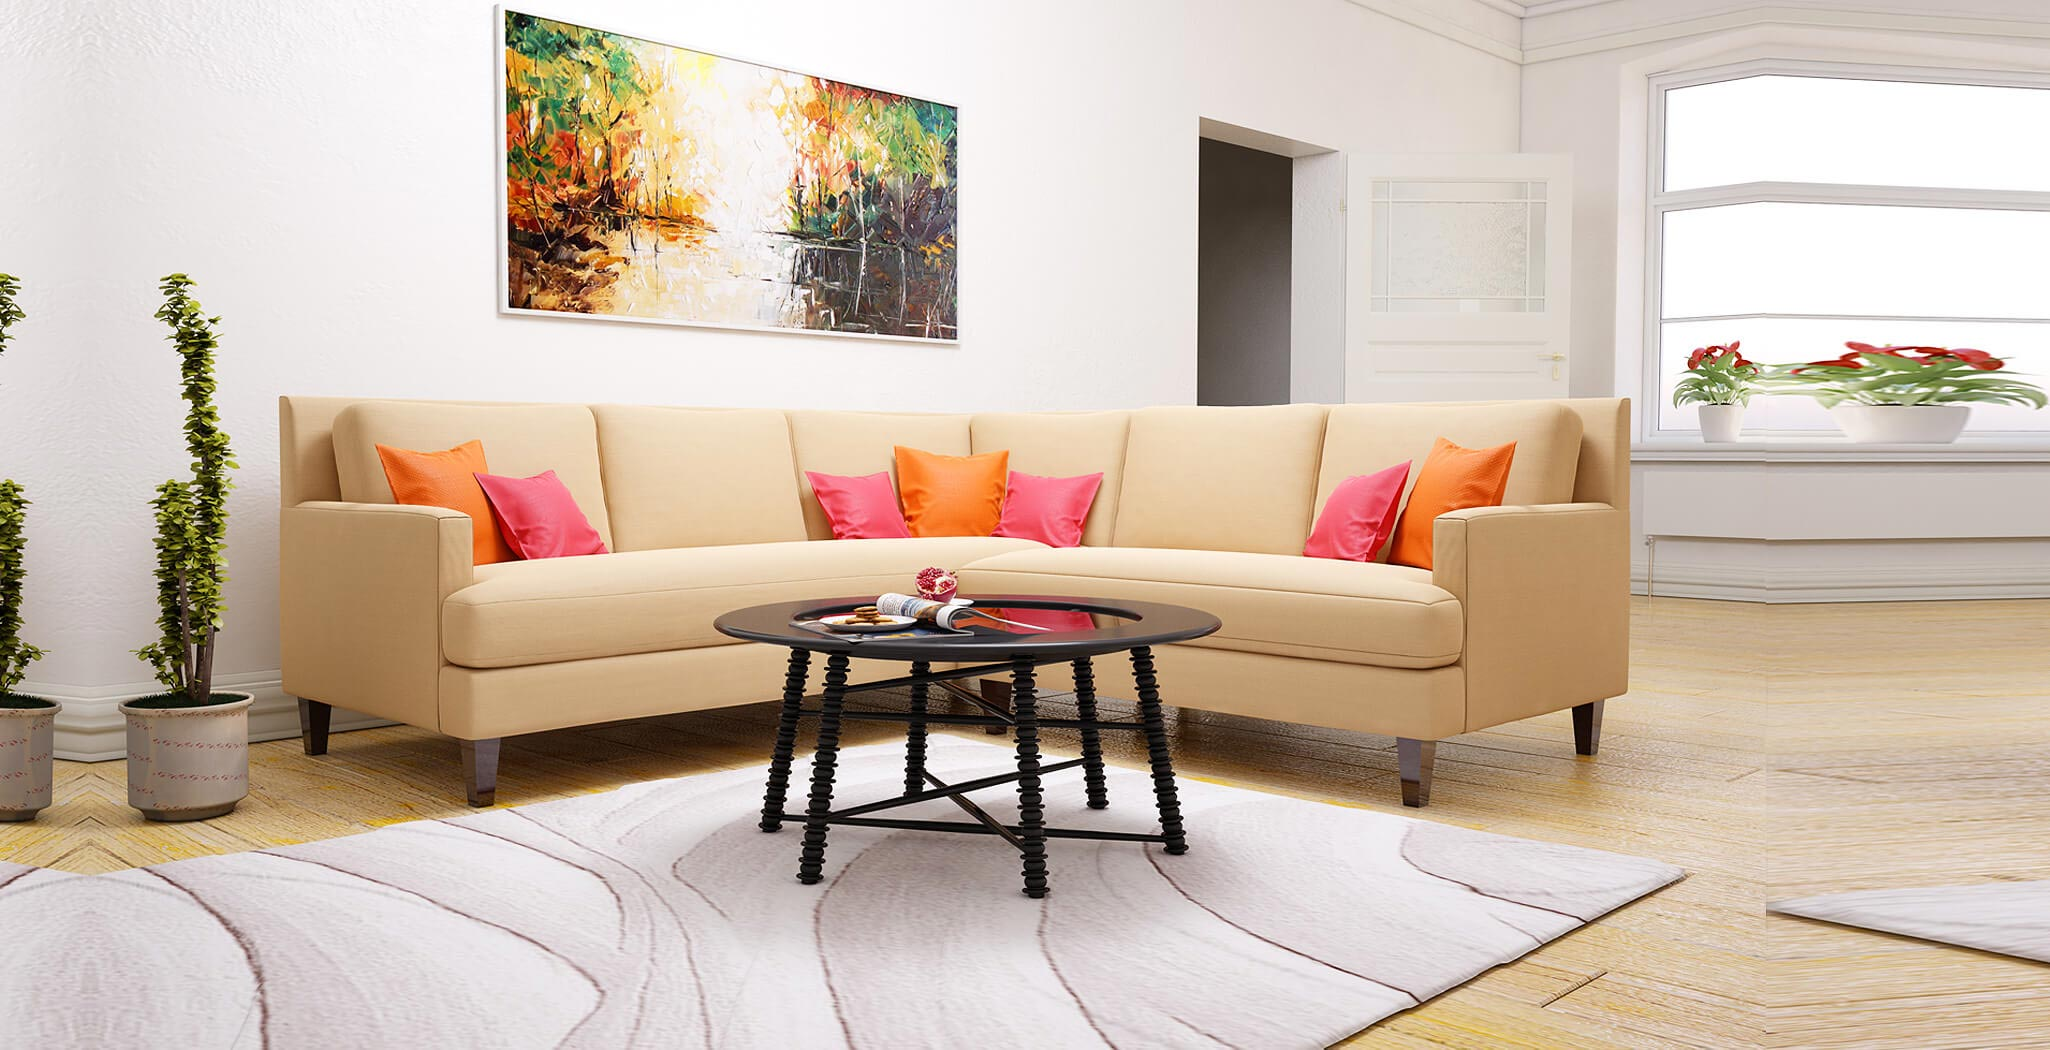 marseille sectional furniture gallery 4